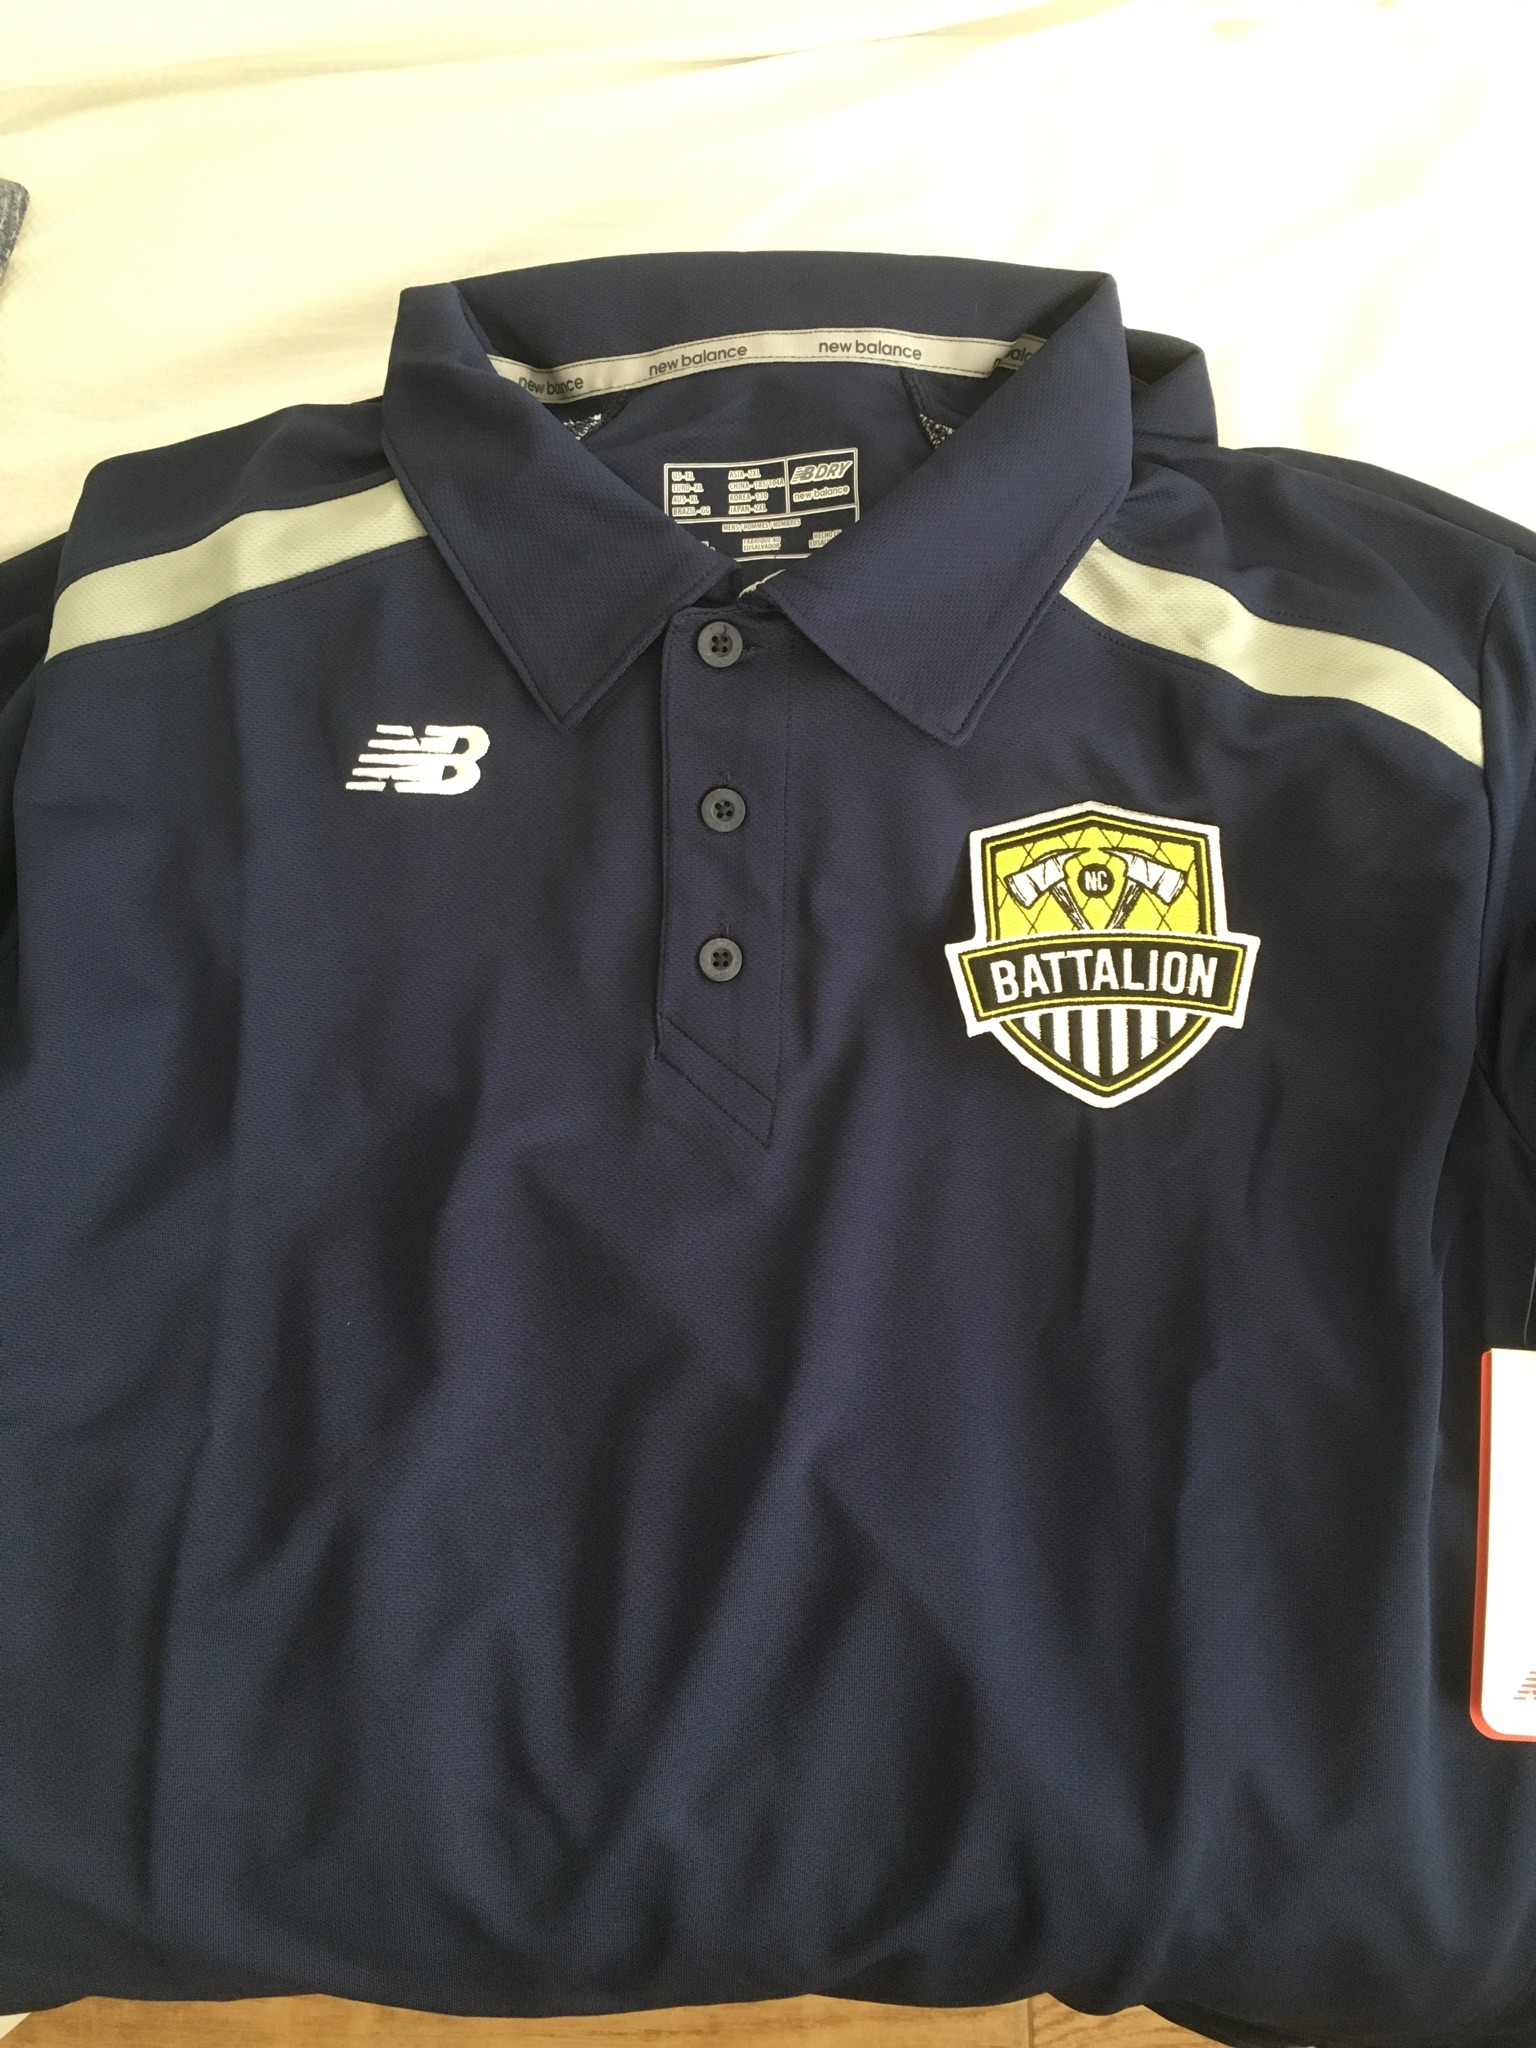 TEAM JERSEY WITH PATCHES